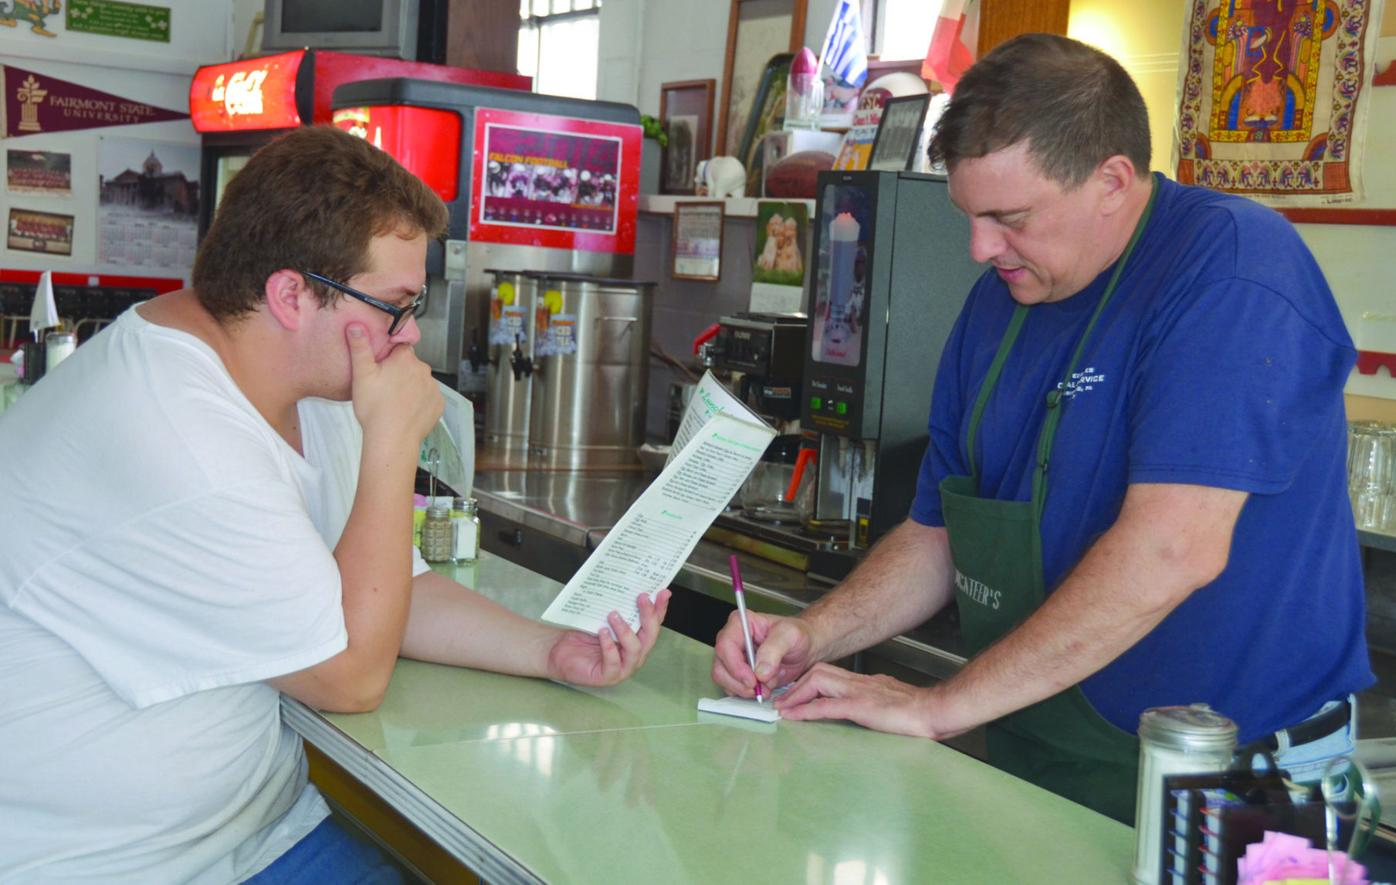 Tim McAteer, right, the owner of McAteer's in Fairmont, takes an order from Chip Tagg Wednesday. The business has been a place for locals to hang out since it opened its doors in 1958.